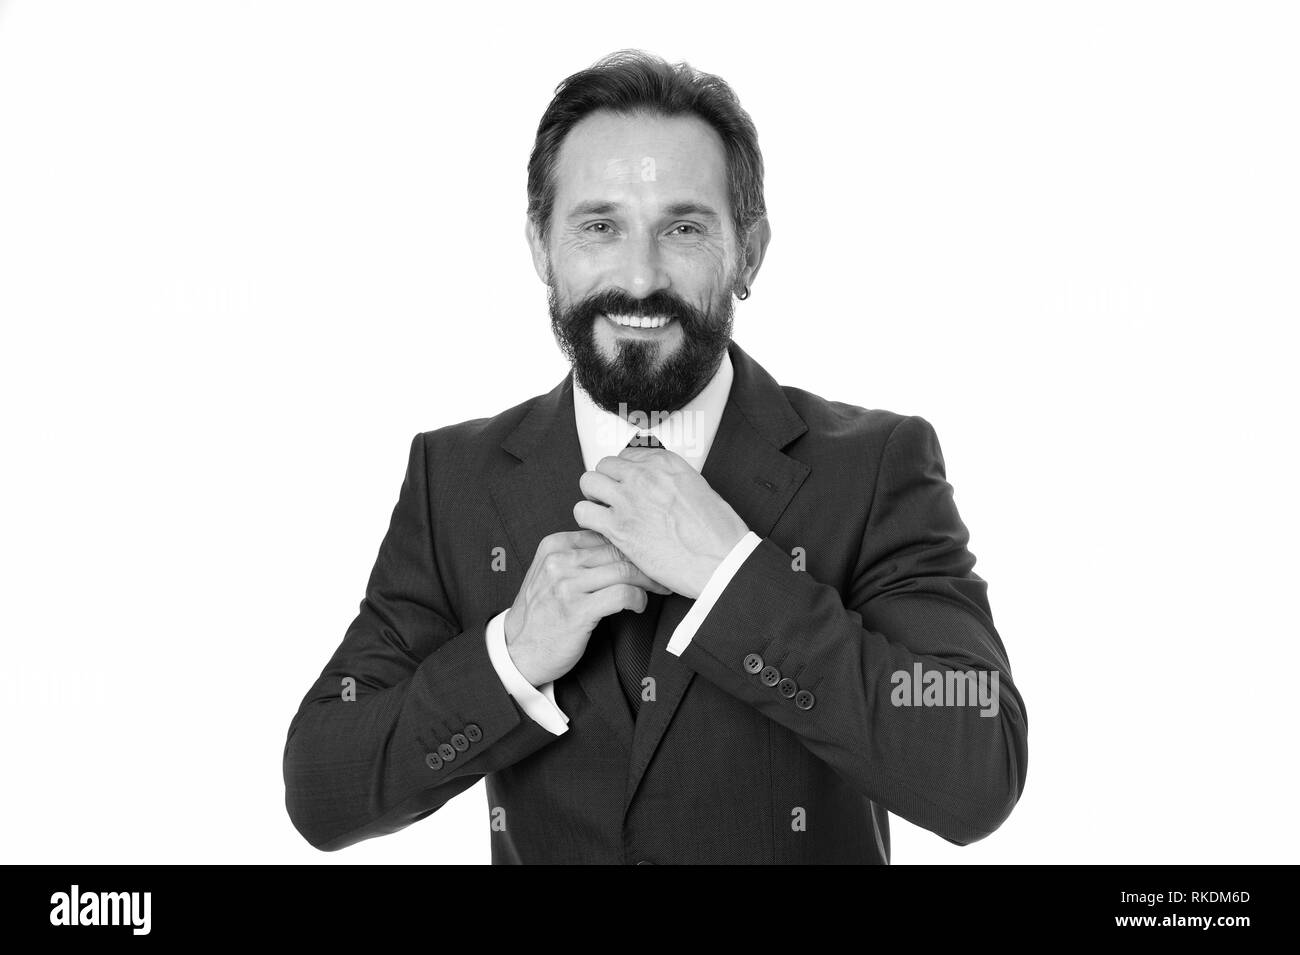 23fedcc82 Business man bearded mature formal suit adjust accessory. Businessman or  manager prepare outfit. Business